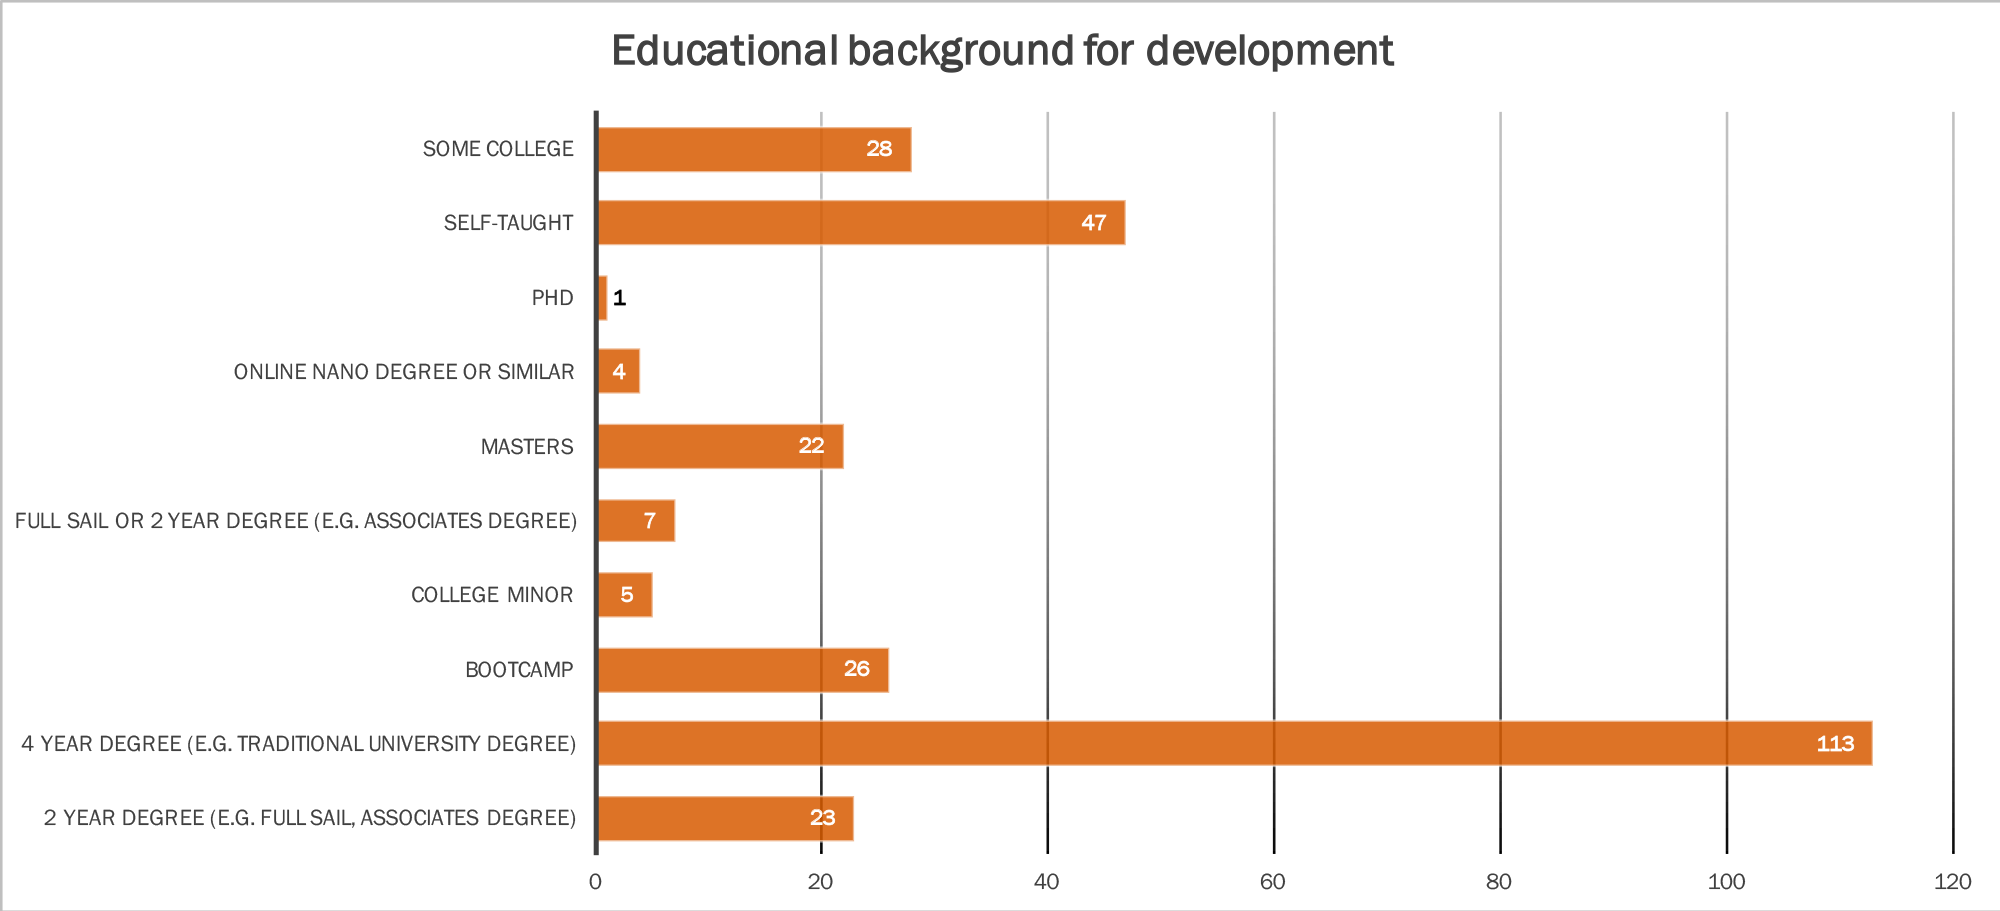 Educational background of developers in Orlando in 2017